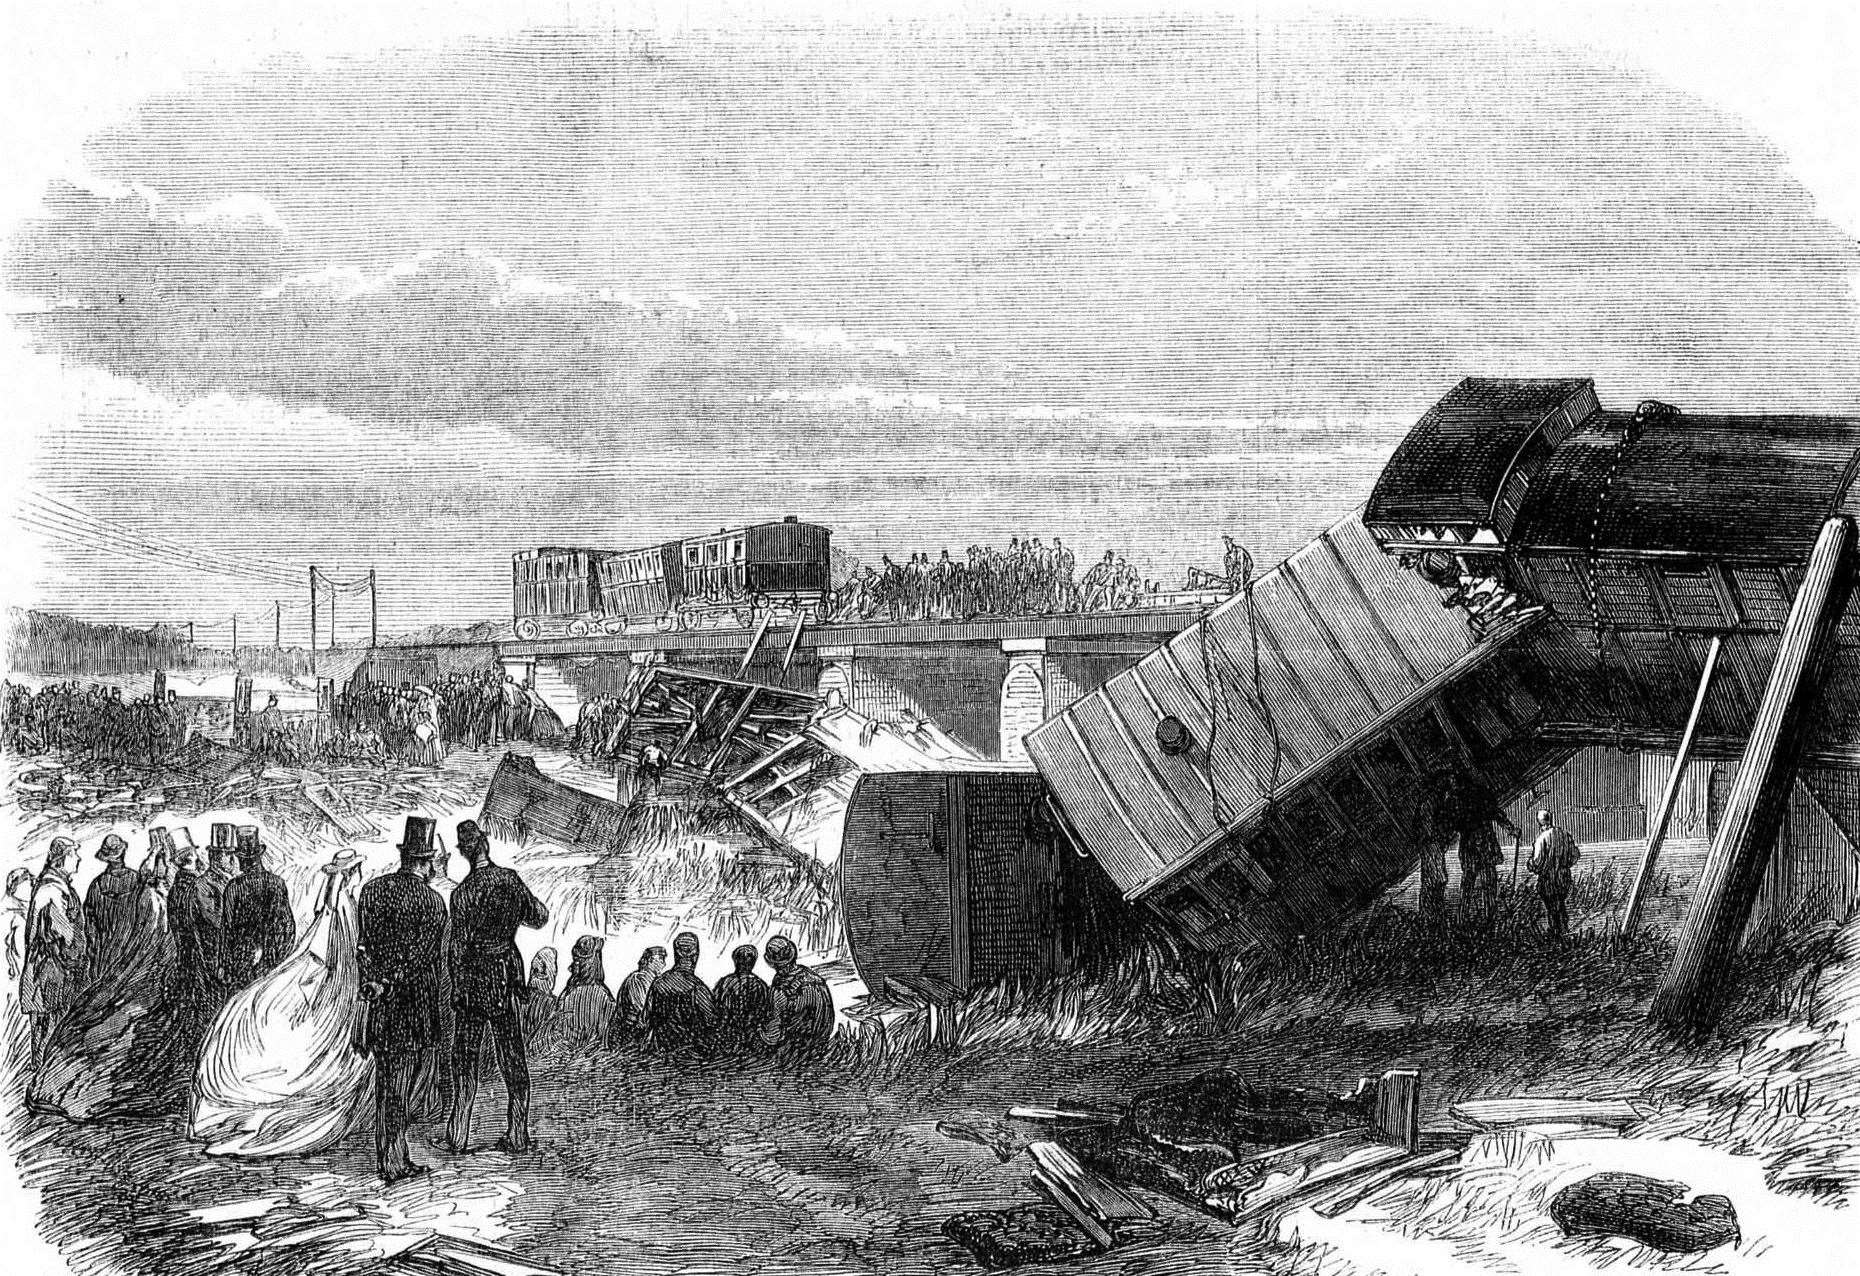 An illustration of the scene of the Staplehurst railway crash